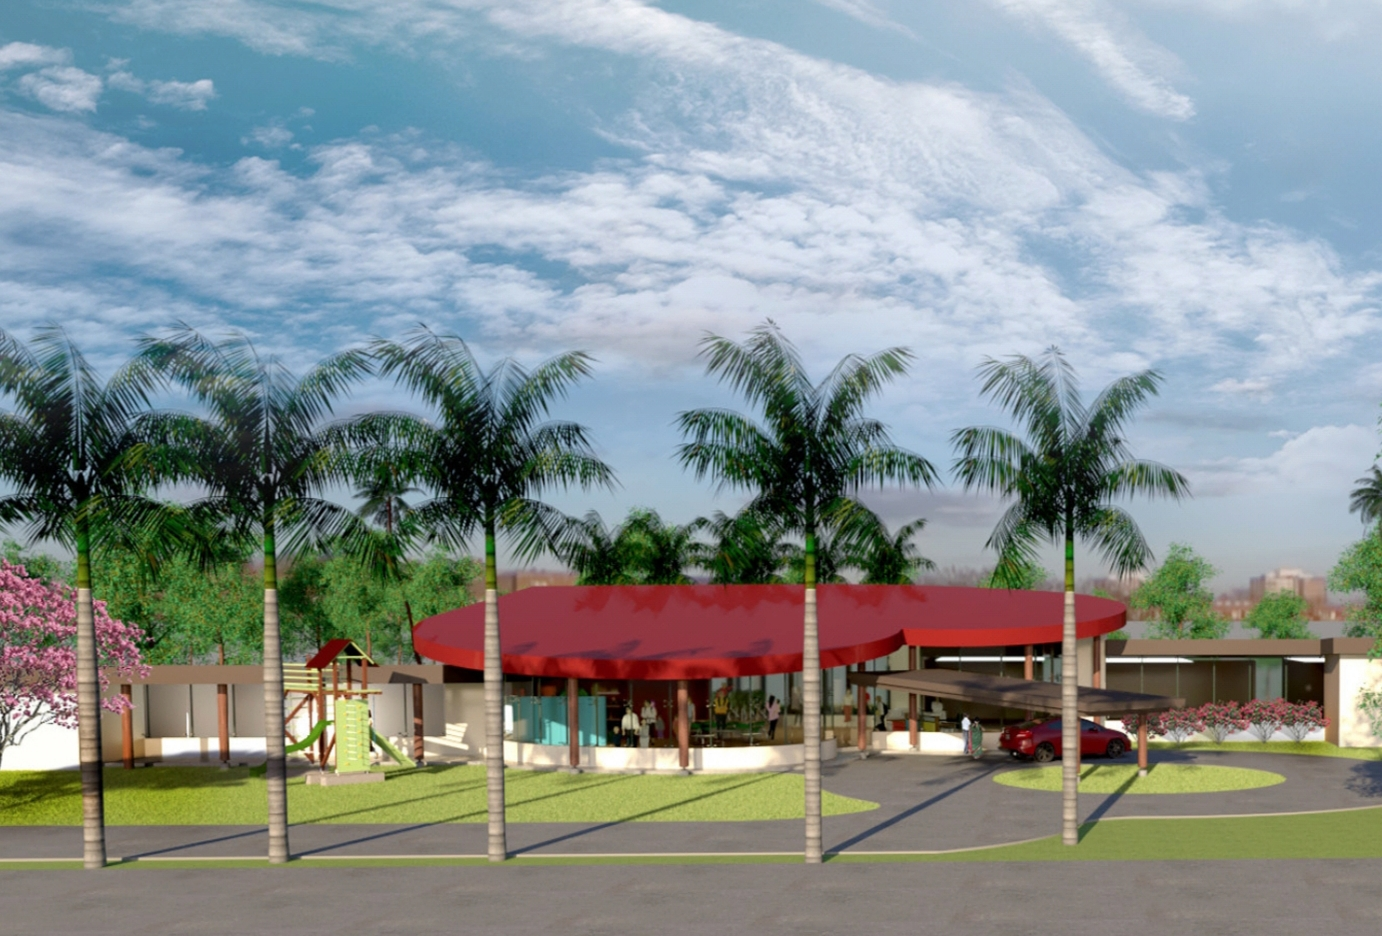 Artist's impression of the Children's Heart Hospital - Fiji